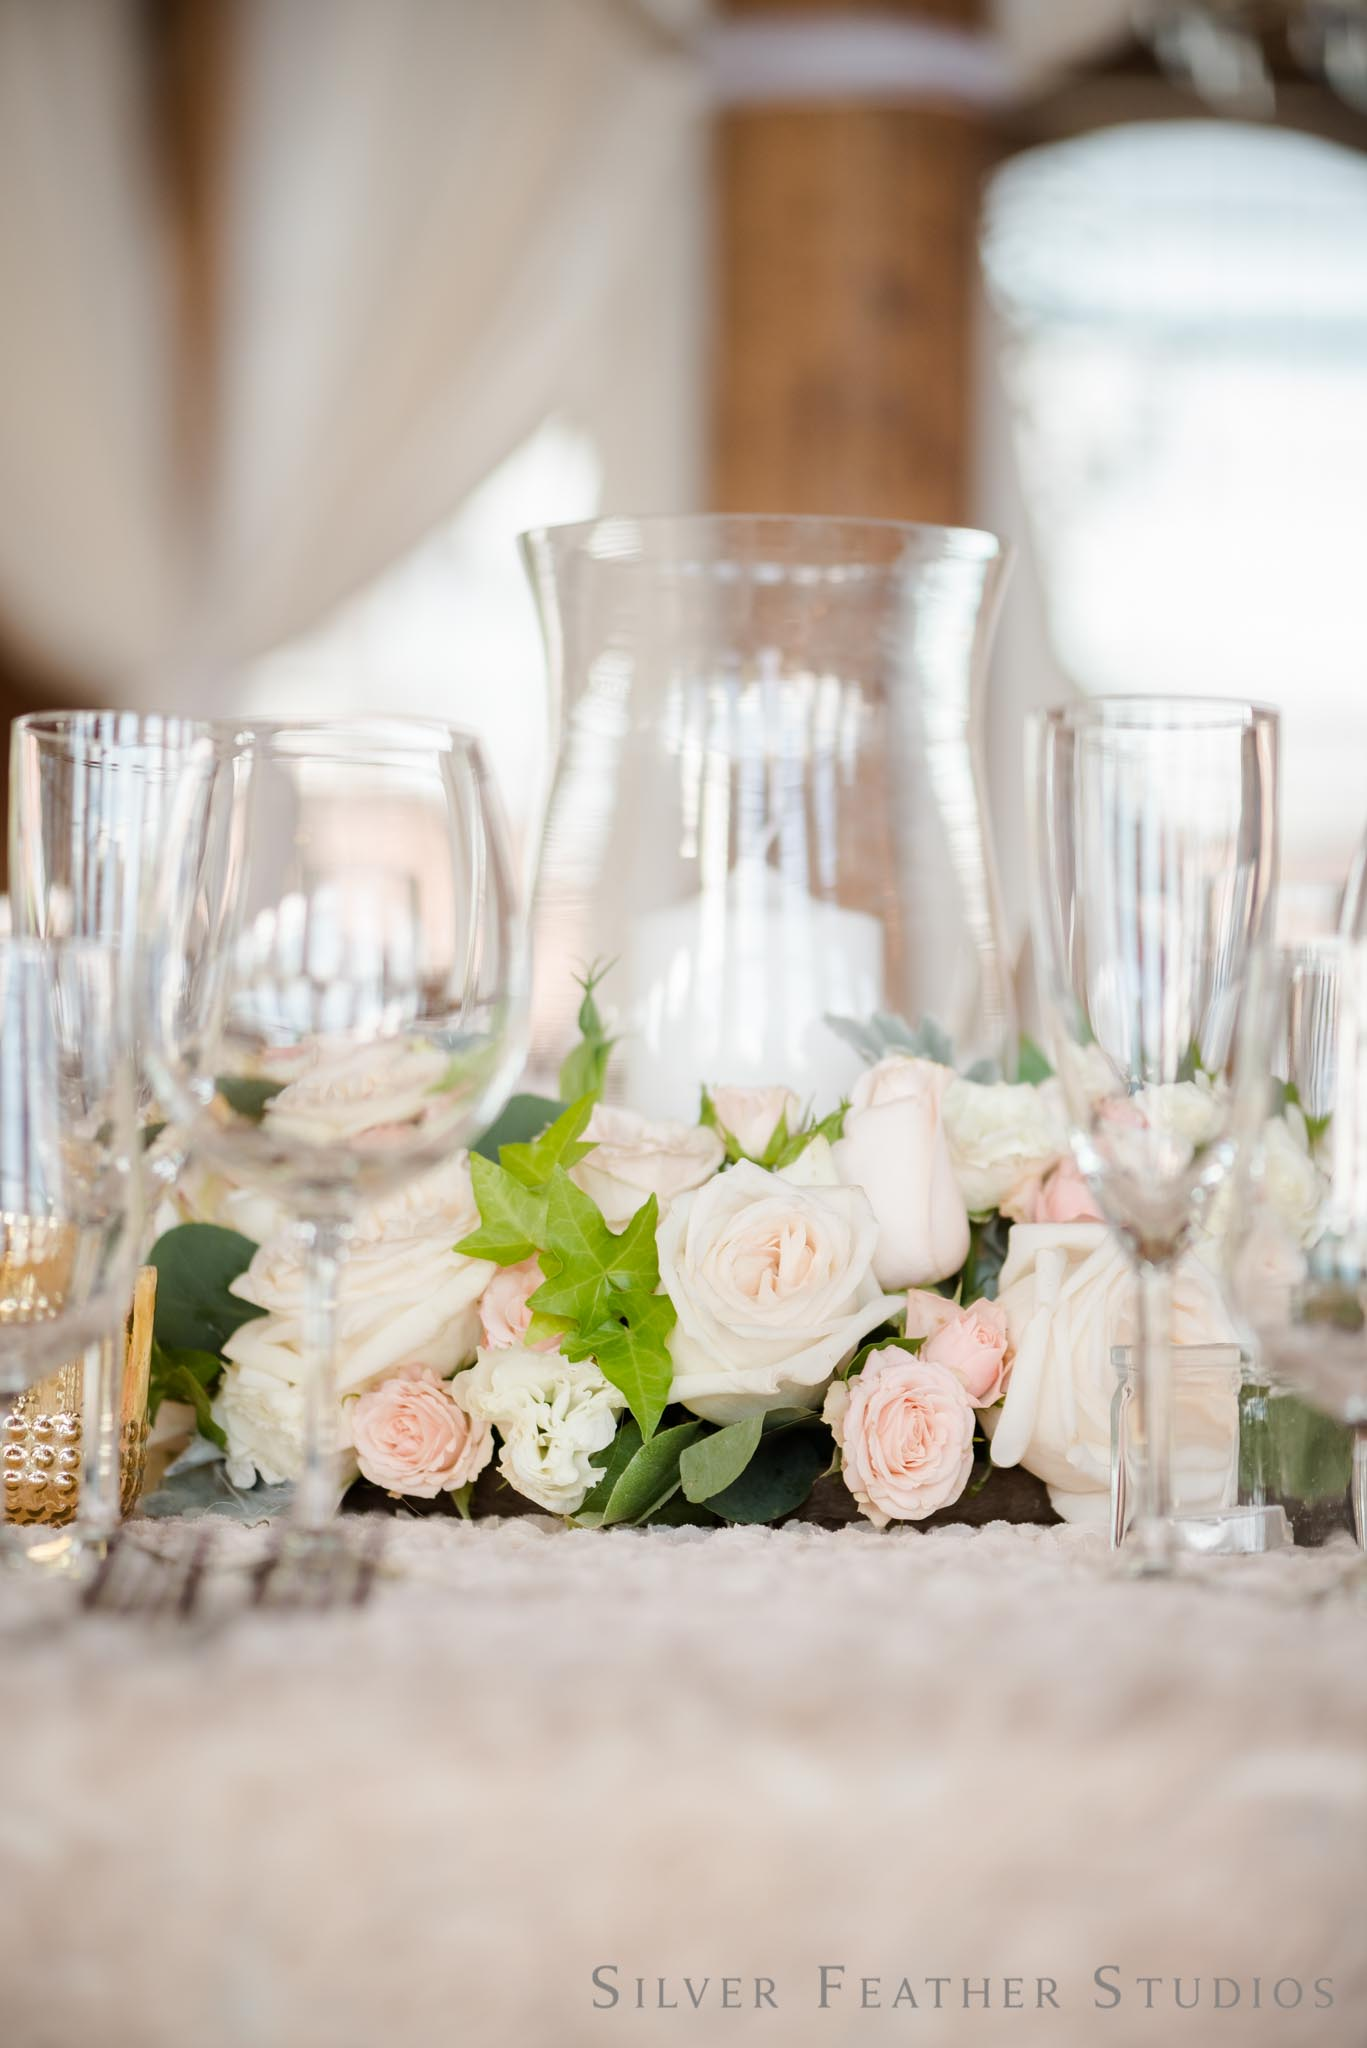 stunning pink, ivory, and champagne centerpieces by Mew Designs.   © Silver Feather Studios, Cotton Room wedding photography